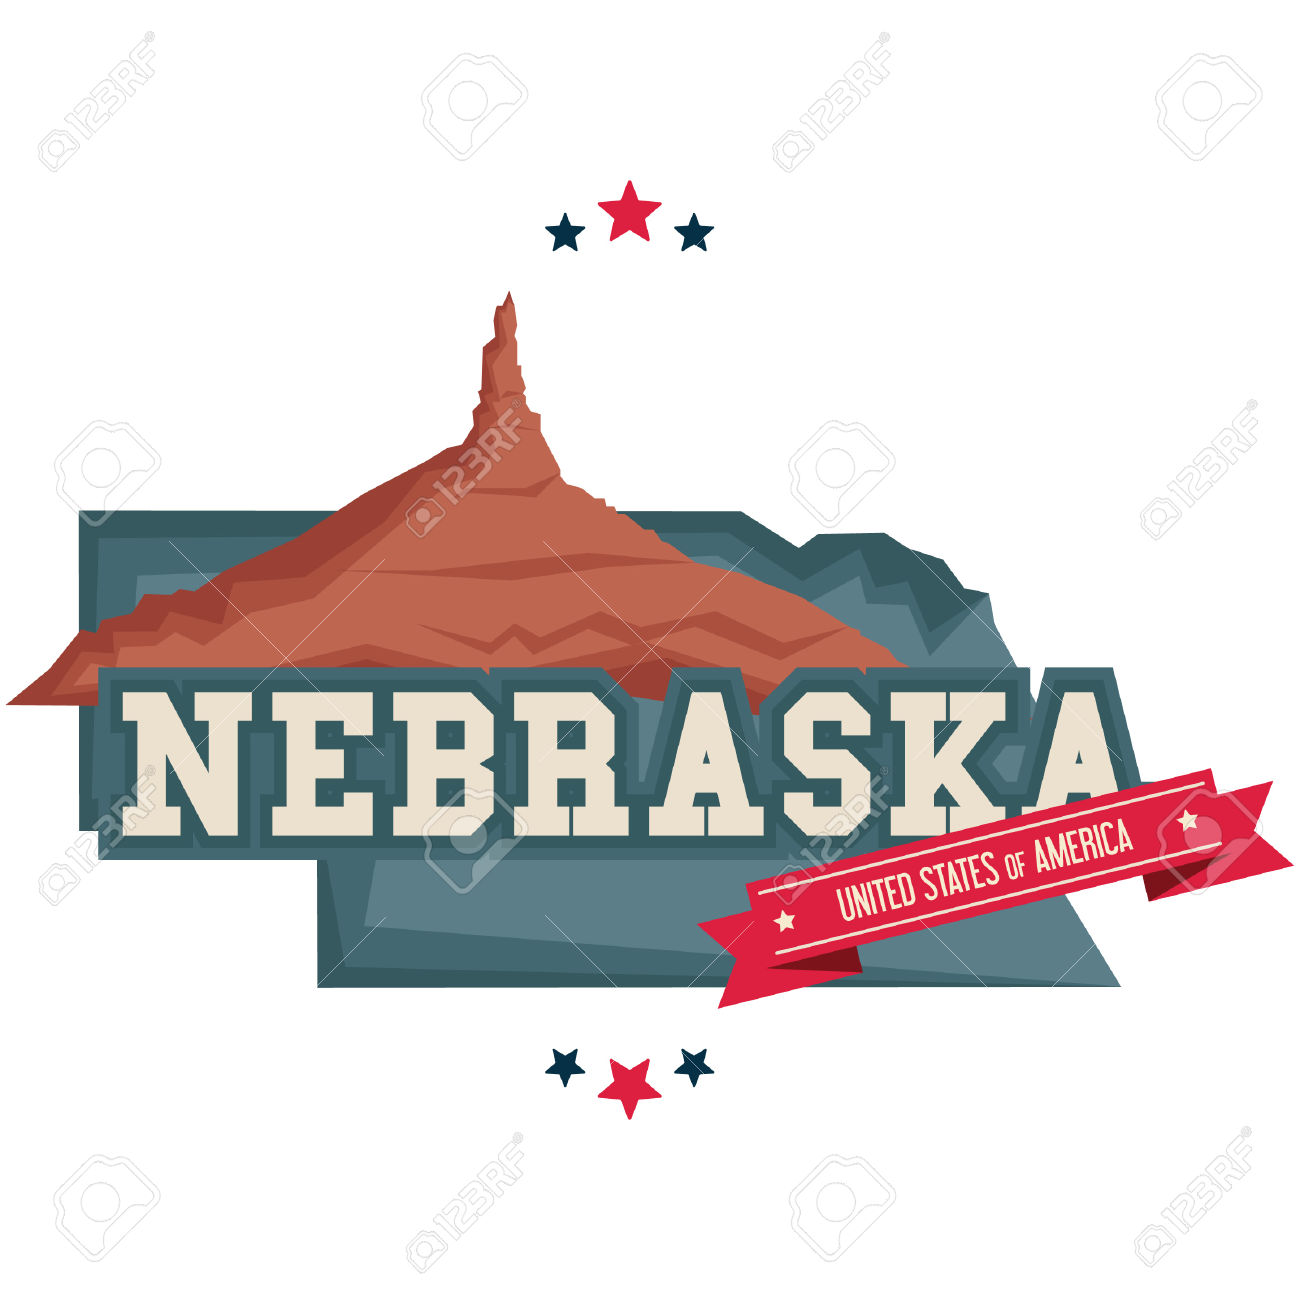 Nebraska Map With Chimney Rock Royalty Free Cliparts, Vectors, And.